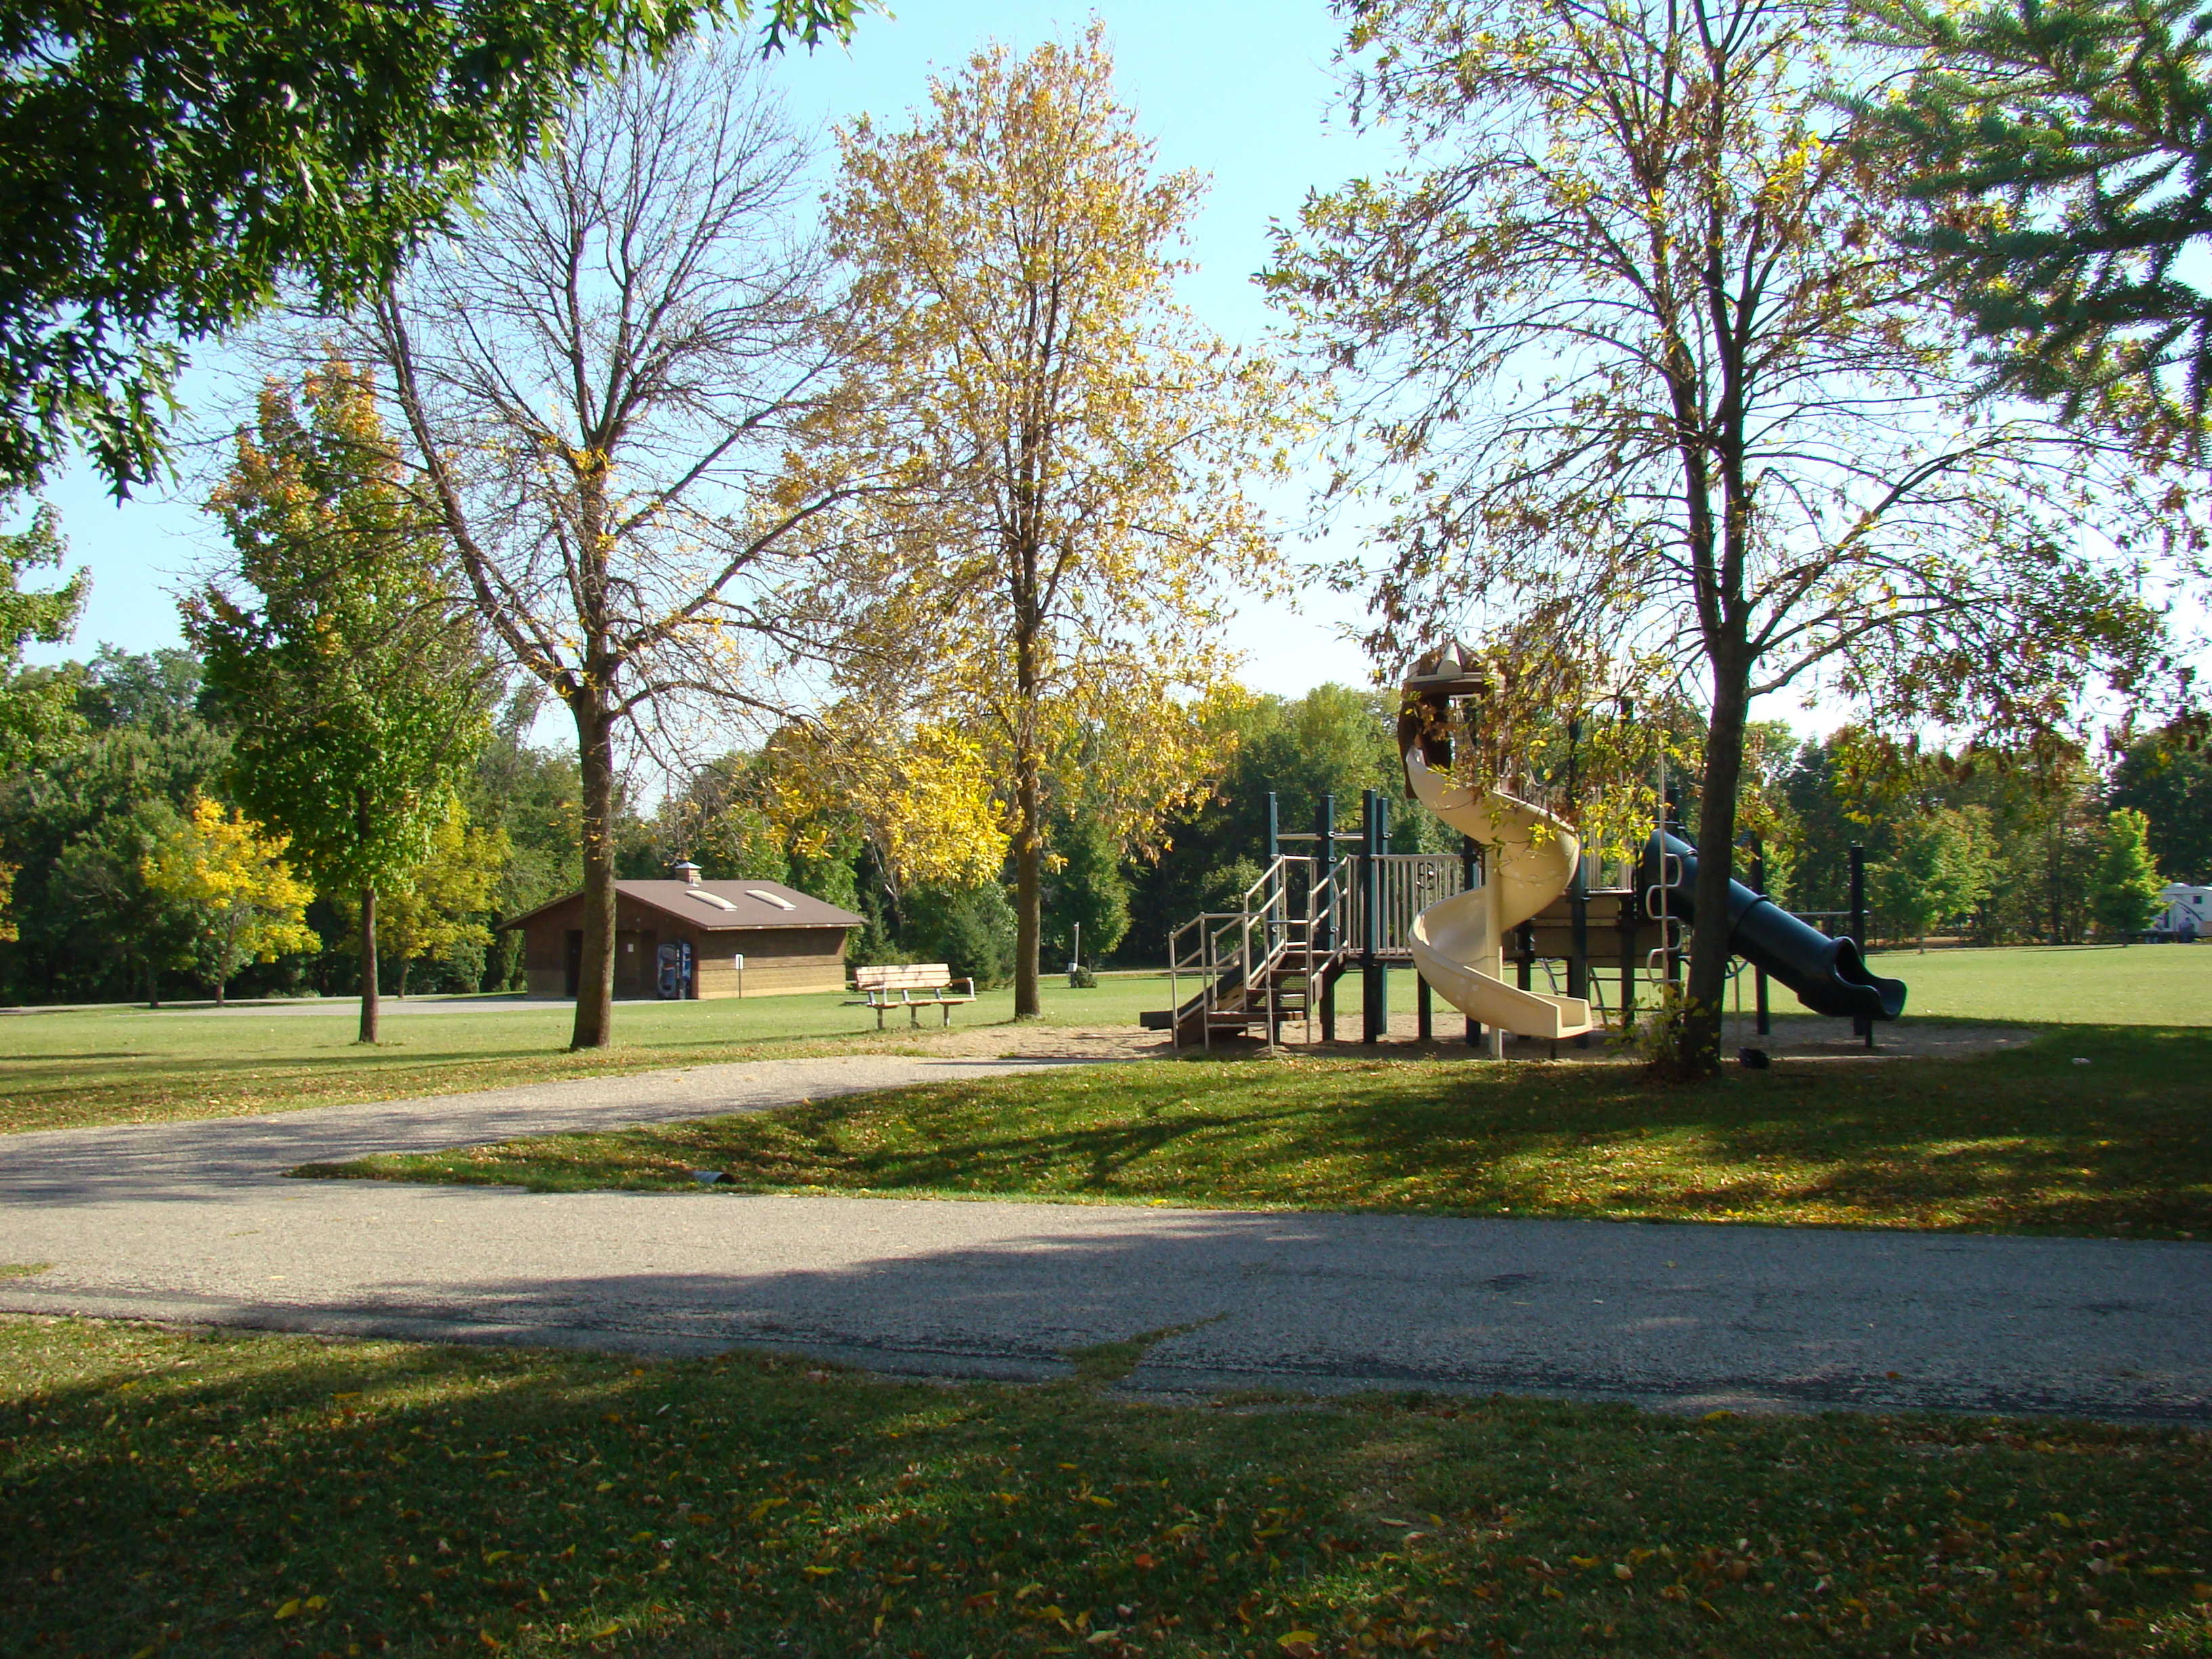 Playground equipment at Bray Park and Campground.